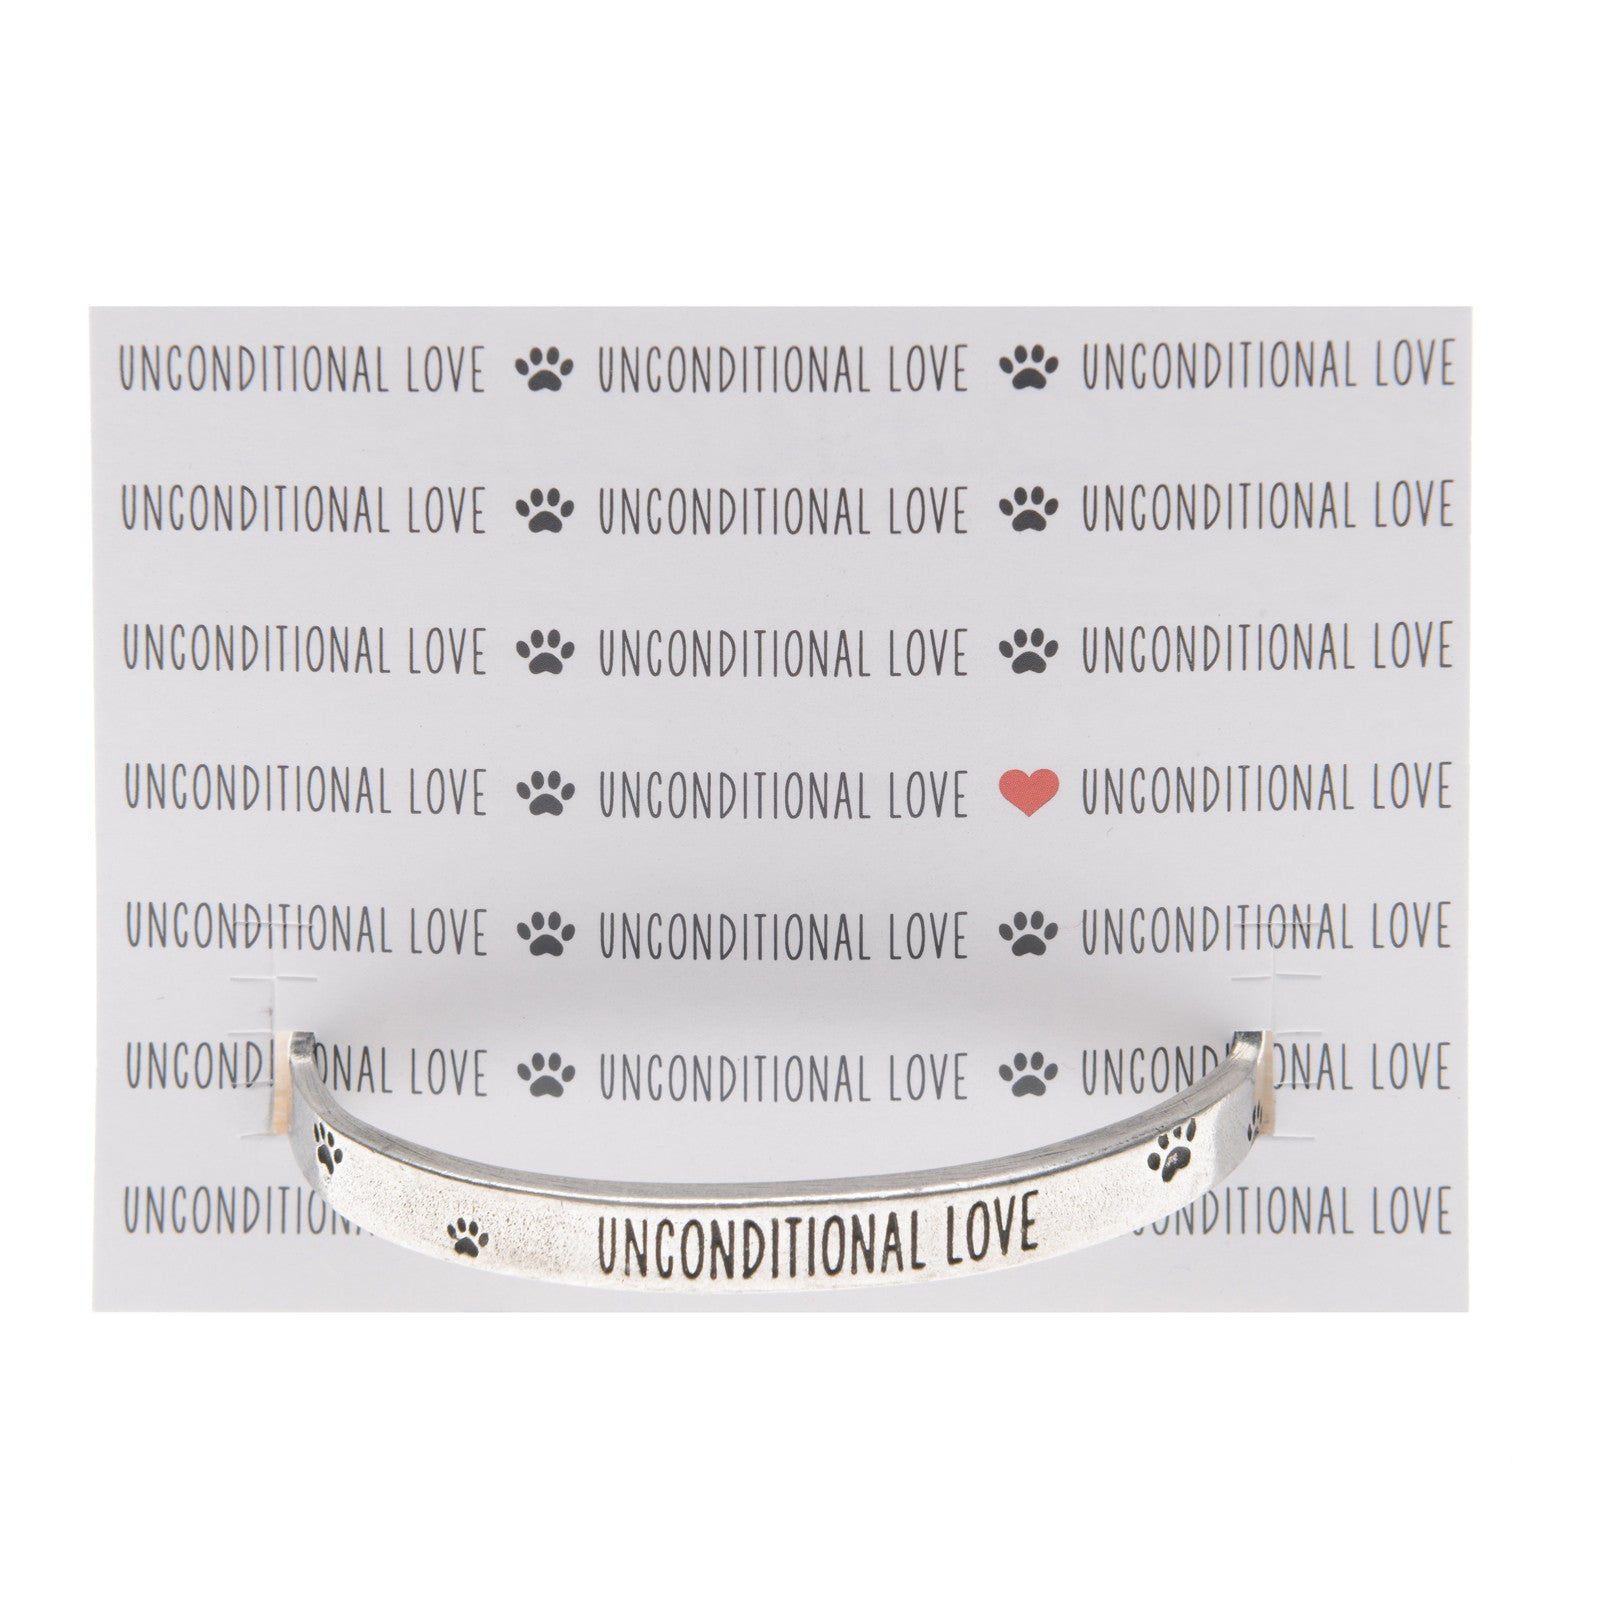 Unconditional Love Cuff Inspirational Jewelry Bracelet - Pet Sympathy Gift or Memorial by Quotable Cuffs